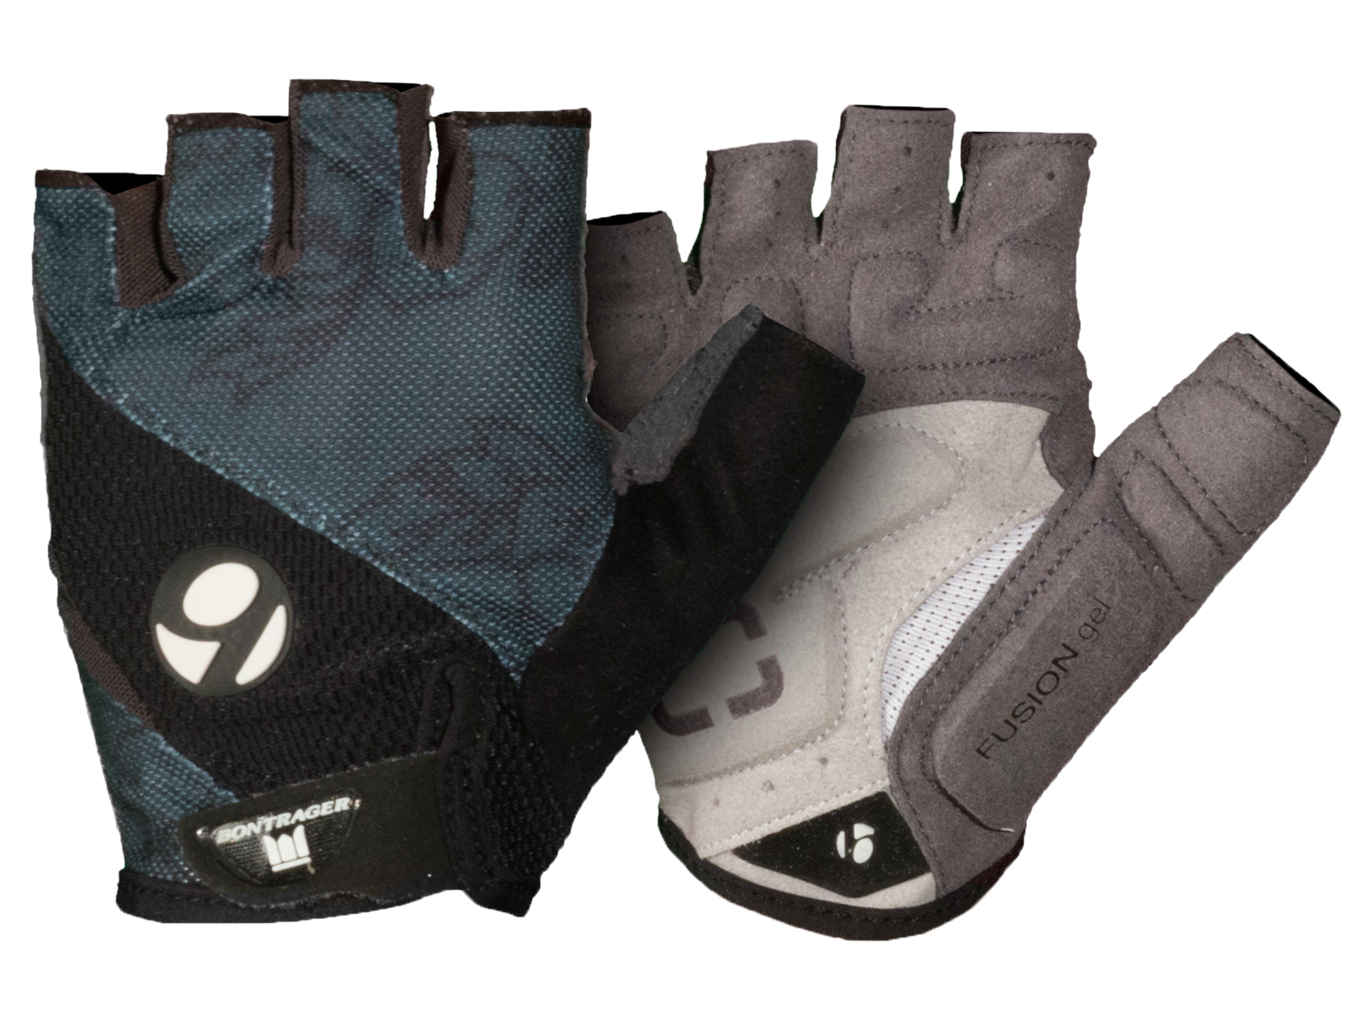 Ladies leather cycling gloves - Bontrager Race Gel Women S Cycling Glove